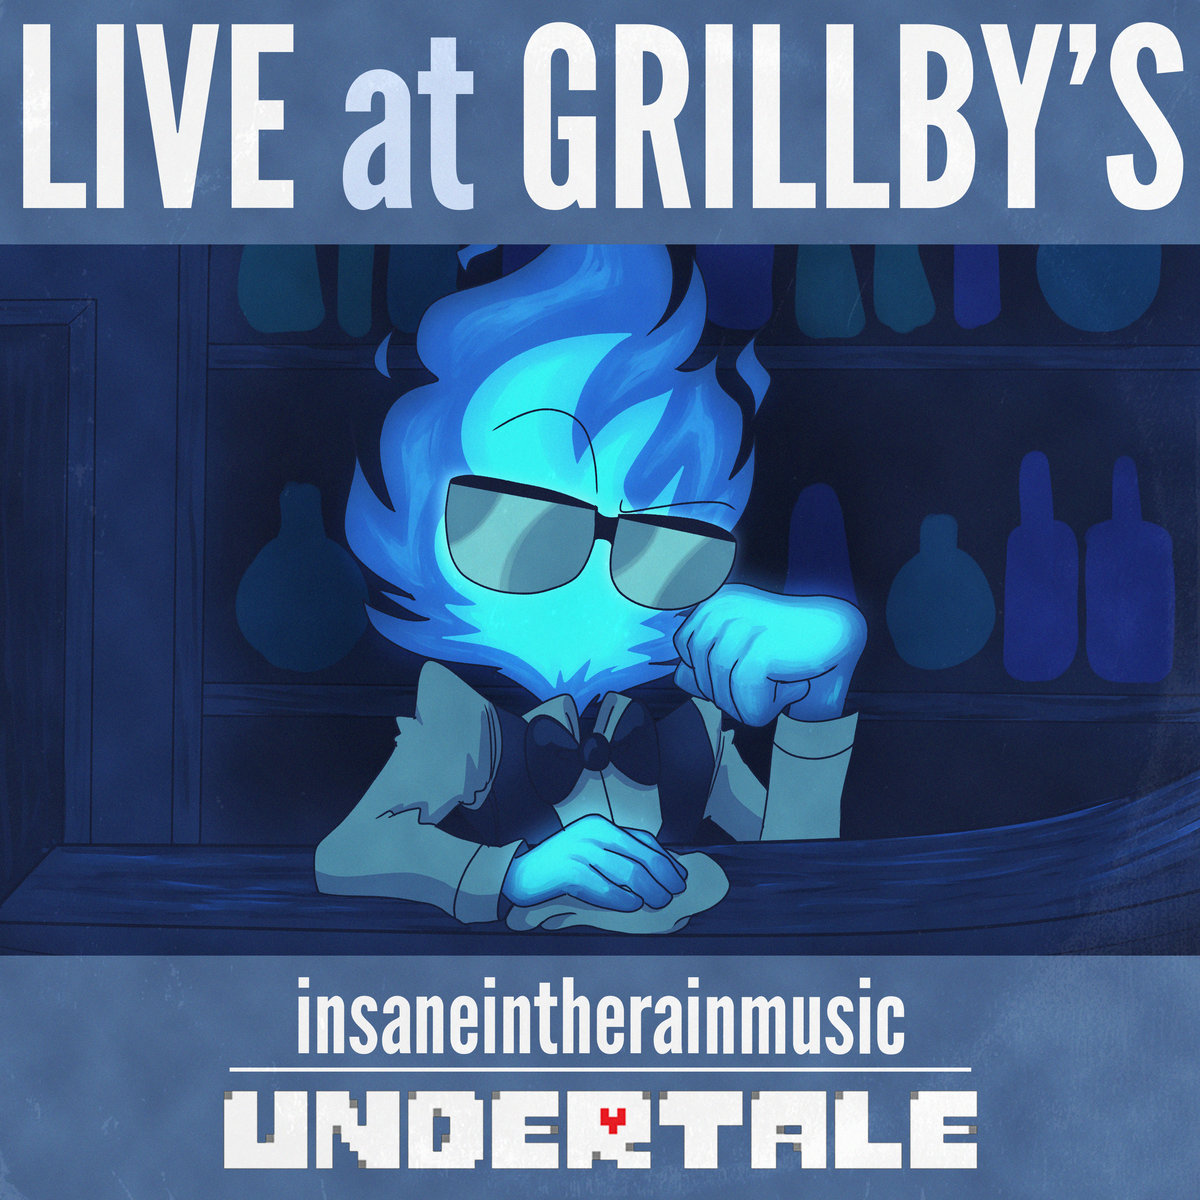 Live at Grillby's | insaneintherainmusic